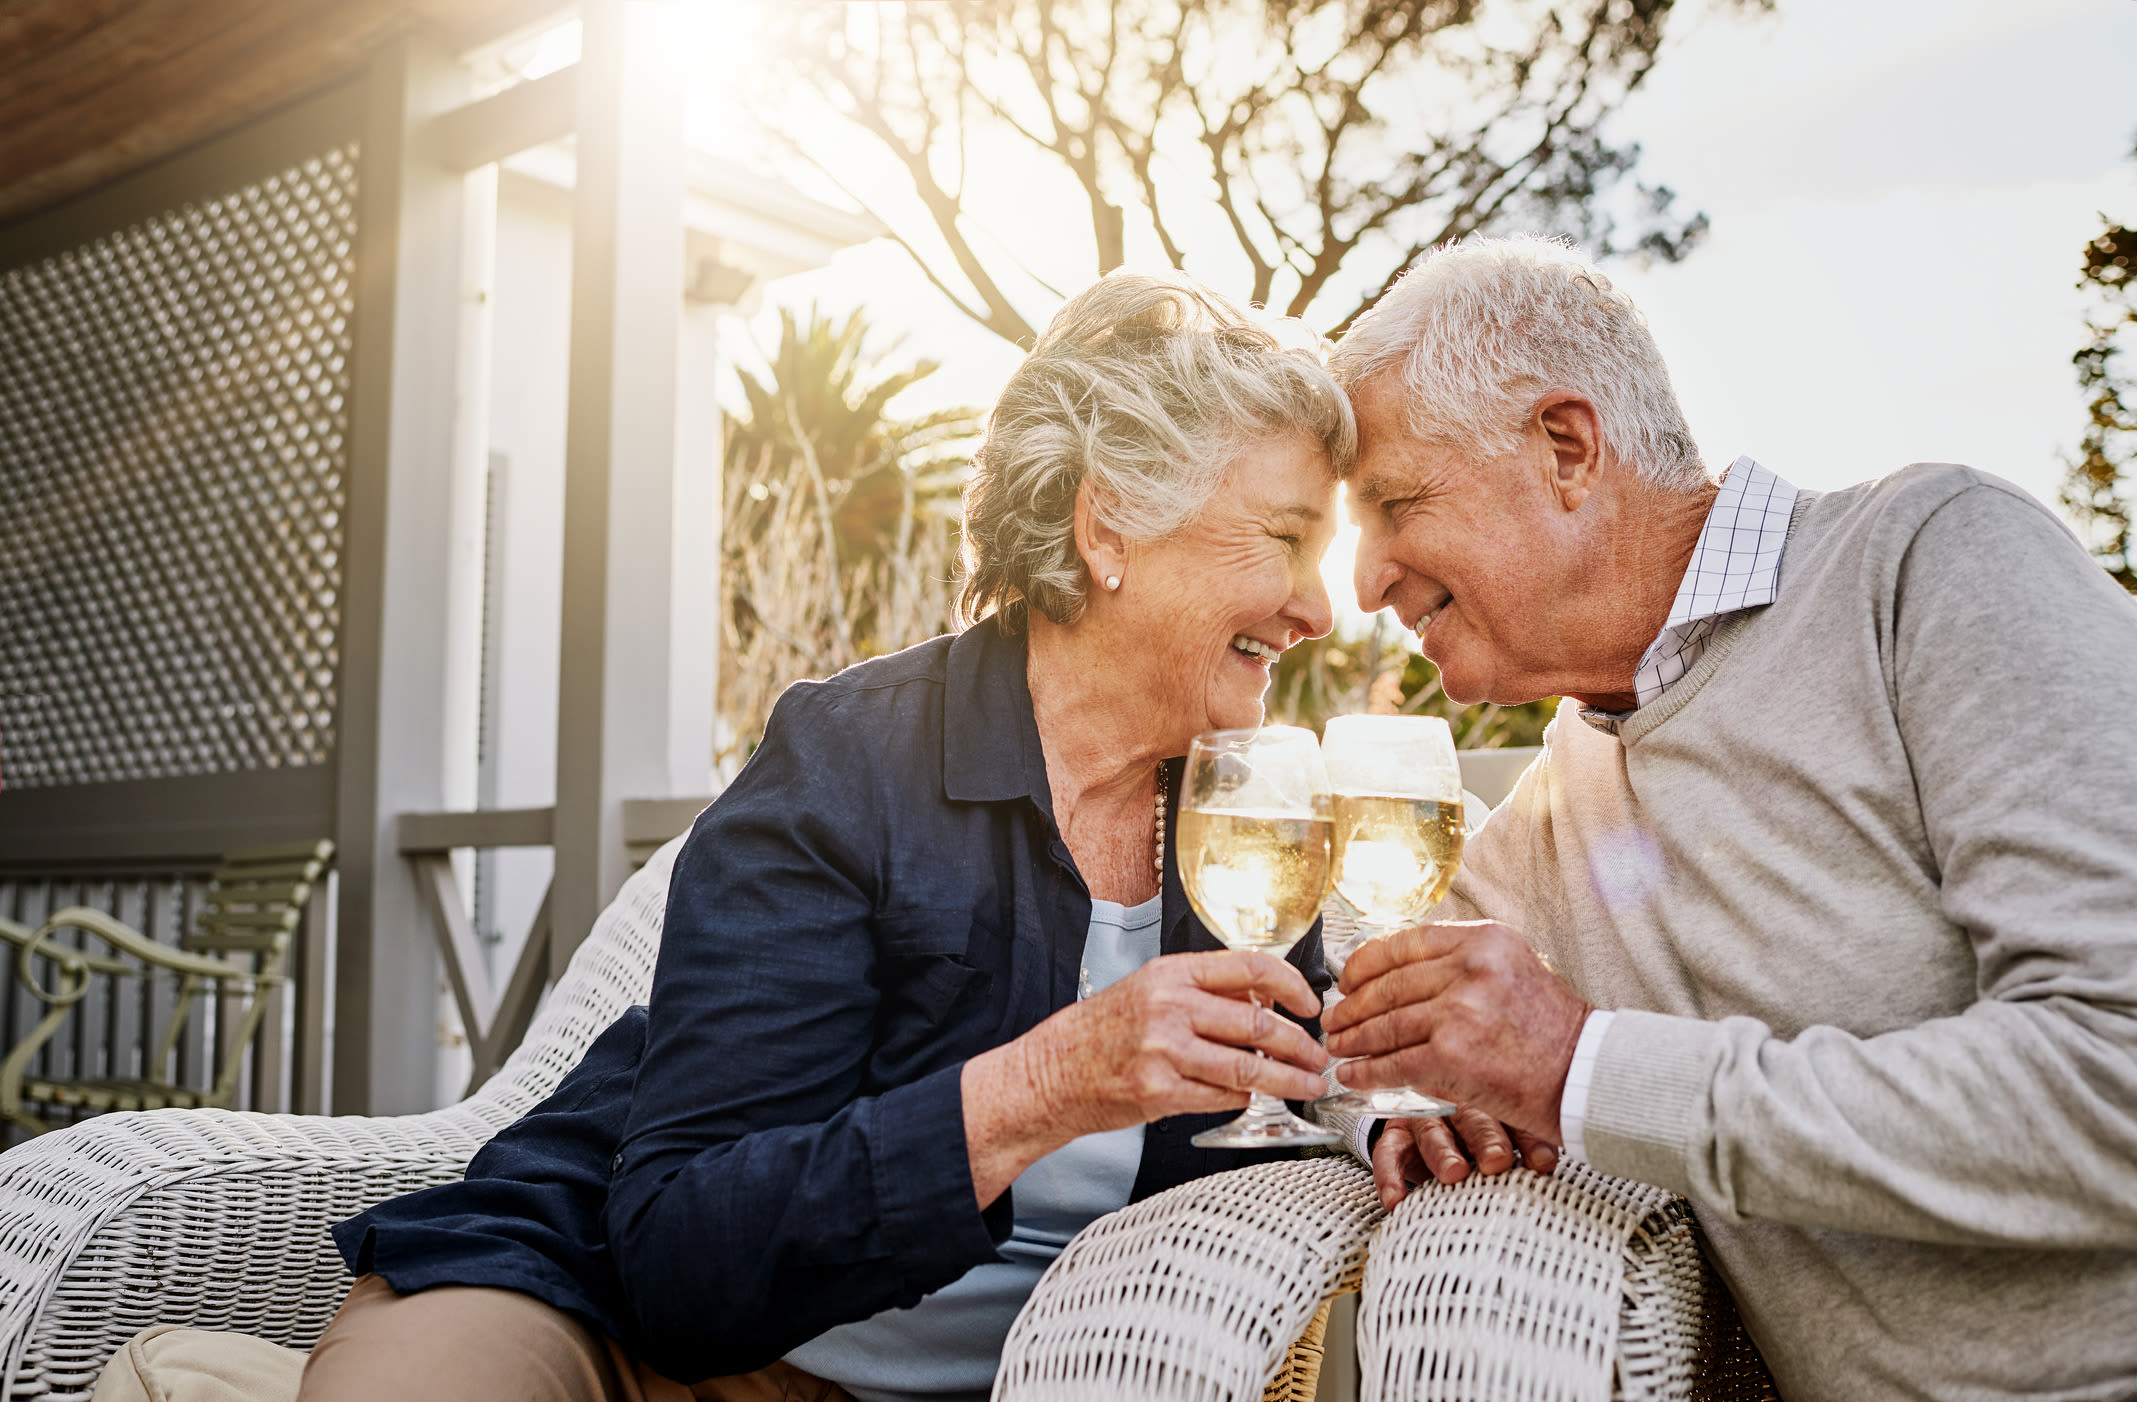 Selling the home at Sun Oak Senior Living in Citrus Heights, California